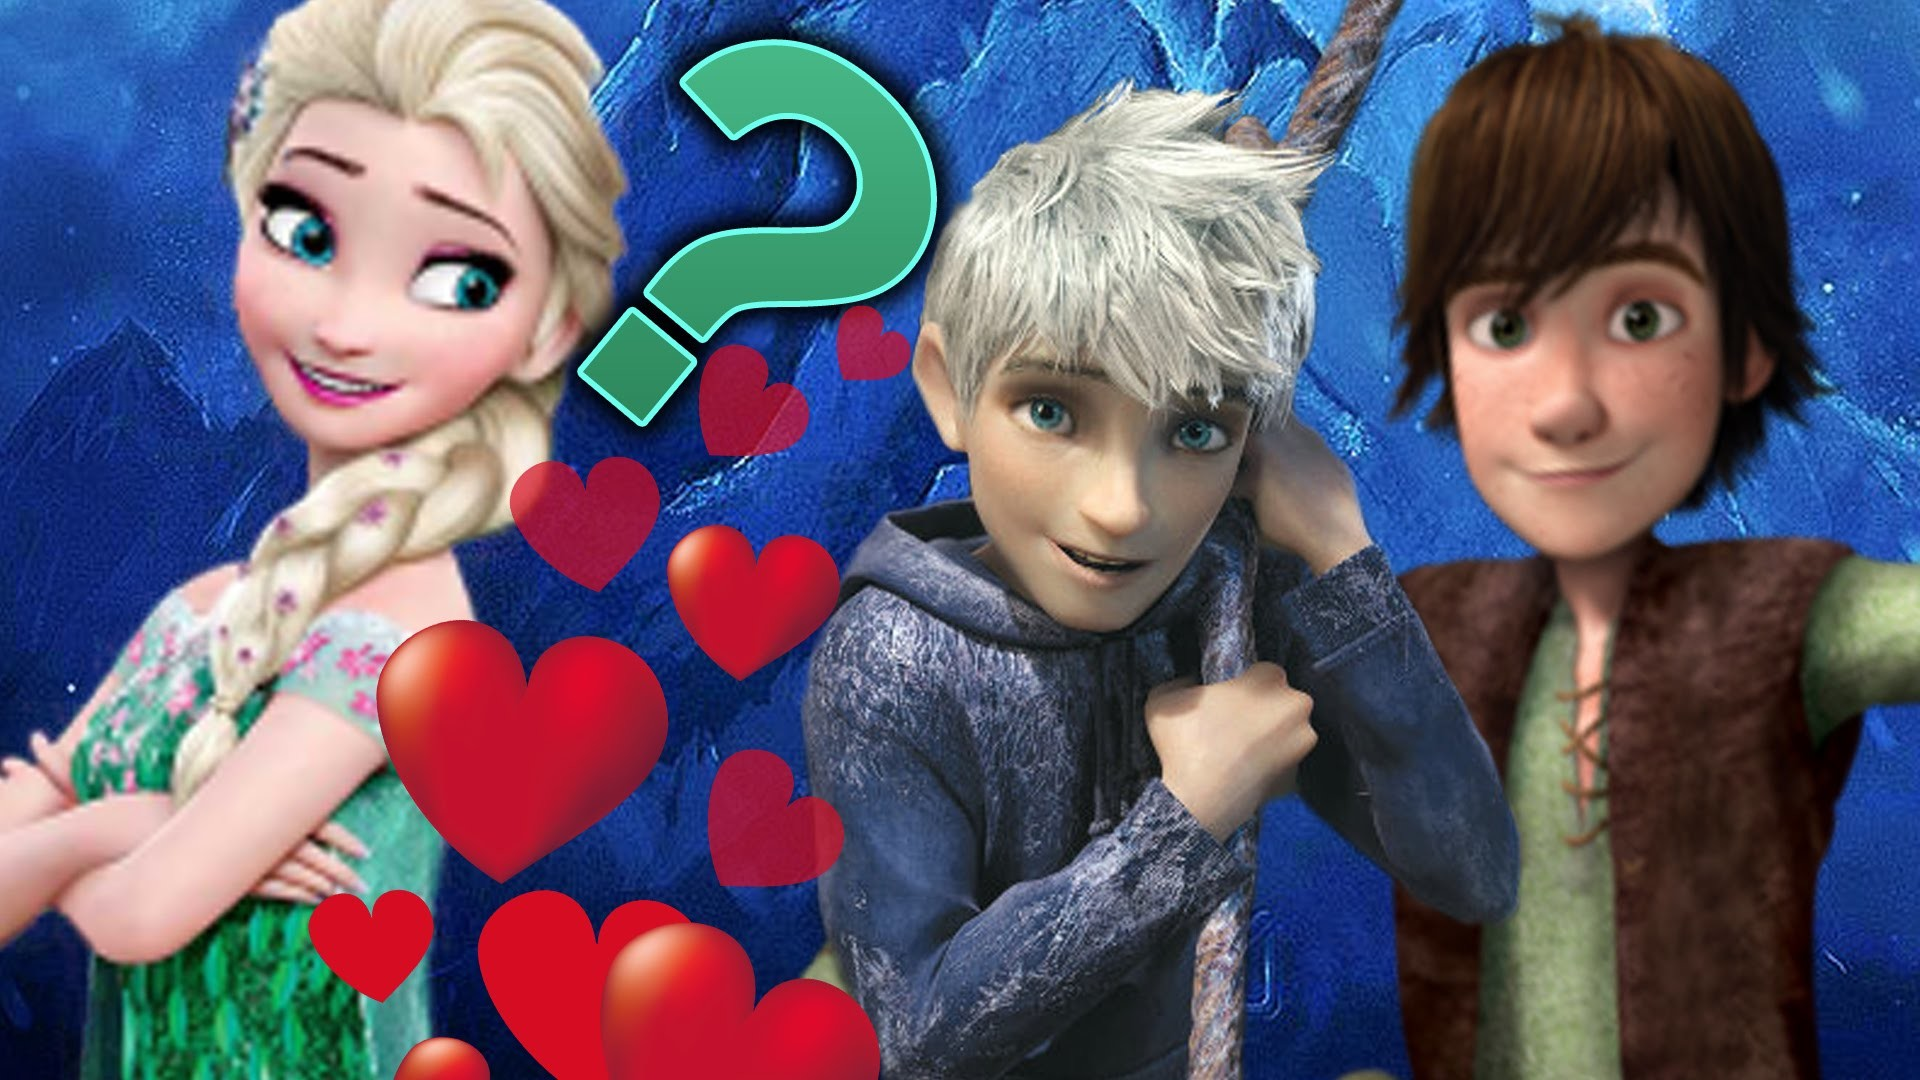 elsa and jack frost wallpapers 79 images